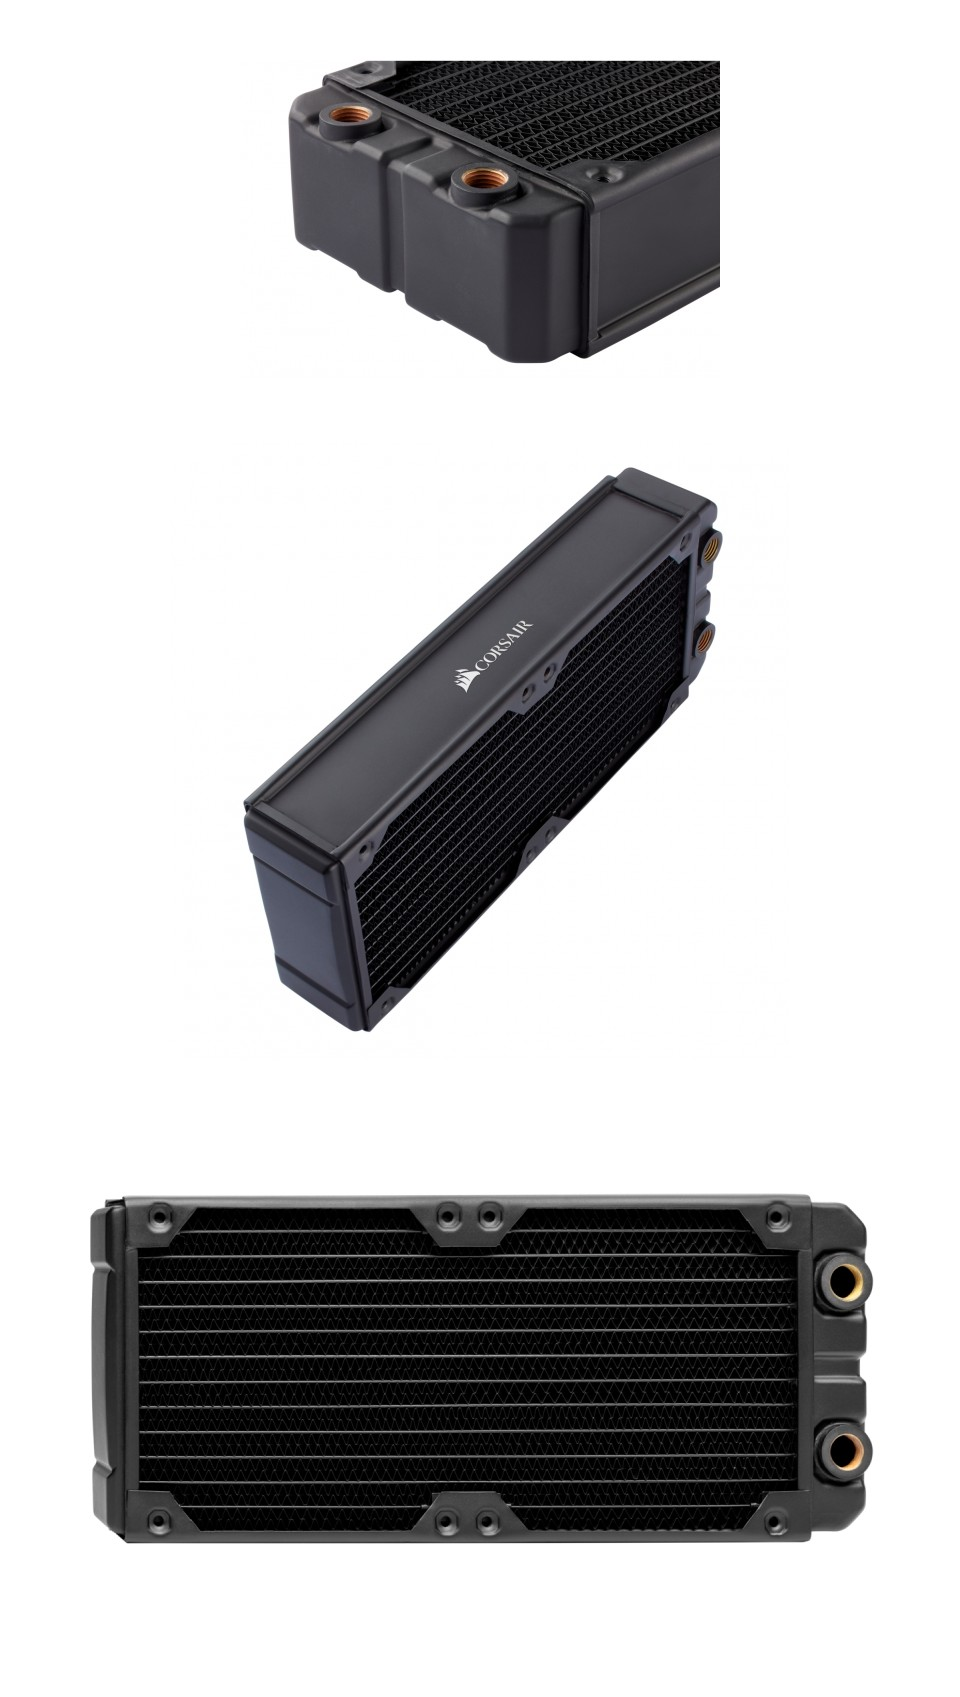 Corsair Hydro X Series XR7 240mm Water Cooling Radiator product